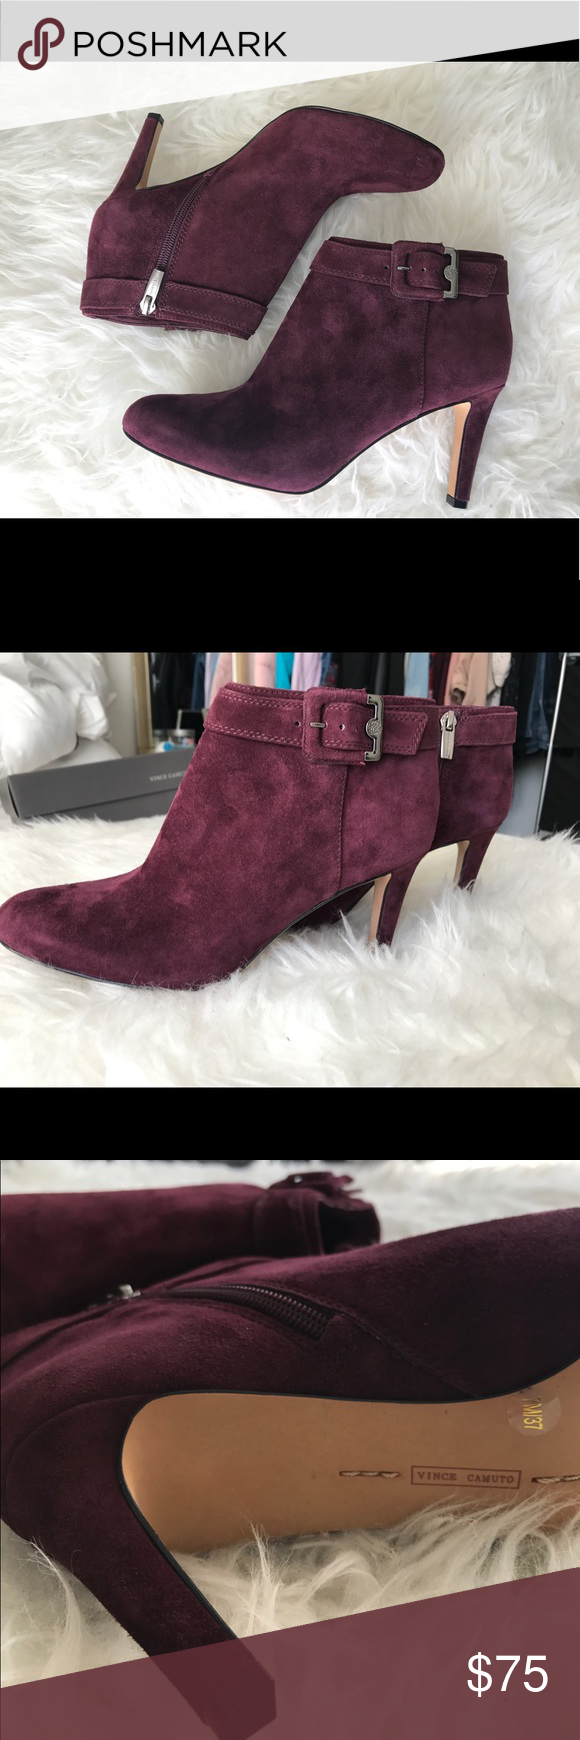 817ddaad148 NEW Vince Camuto  Chrissa  Suede Booties Brand New no Box. Size 7. Vince  Camuto Chrissa in Cabernet Suede. From the Nordstrom s website  A buckled  strap ...